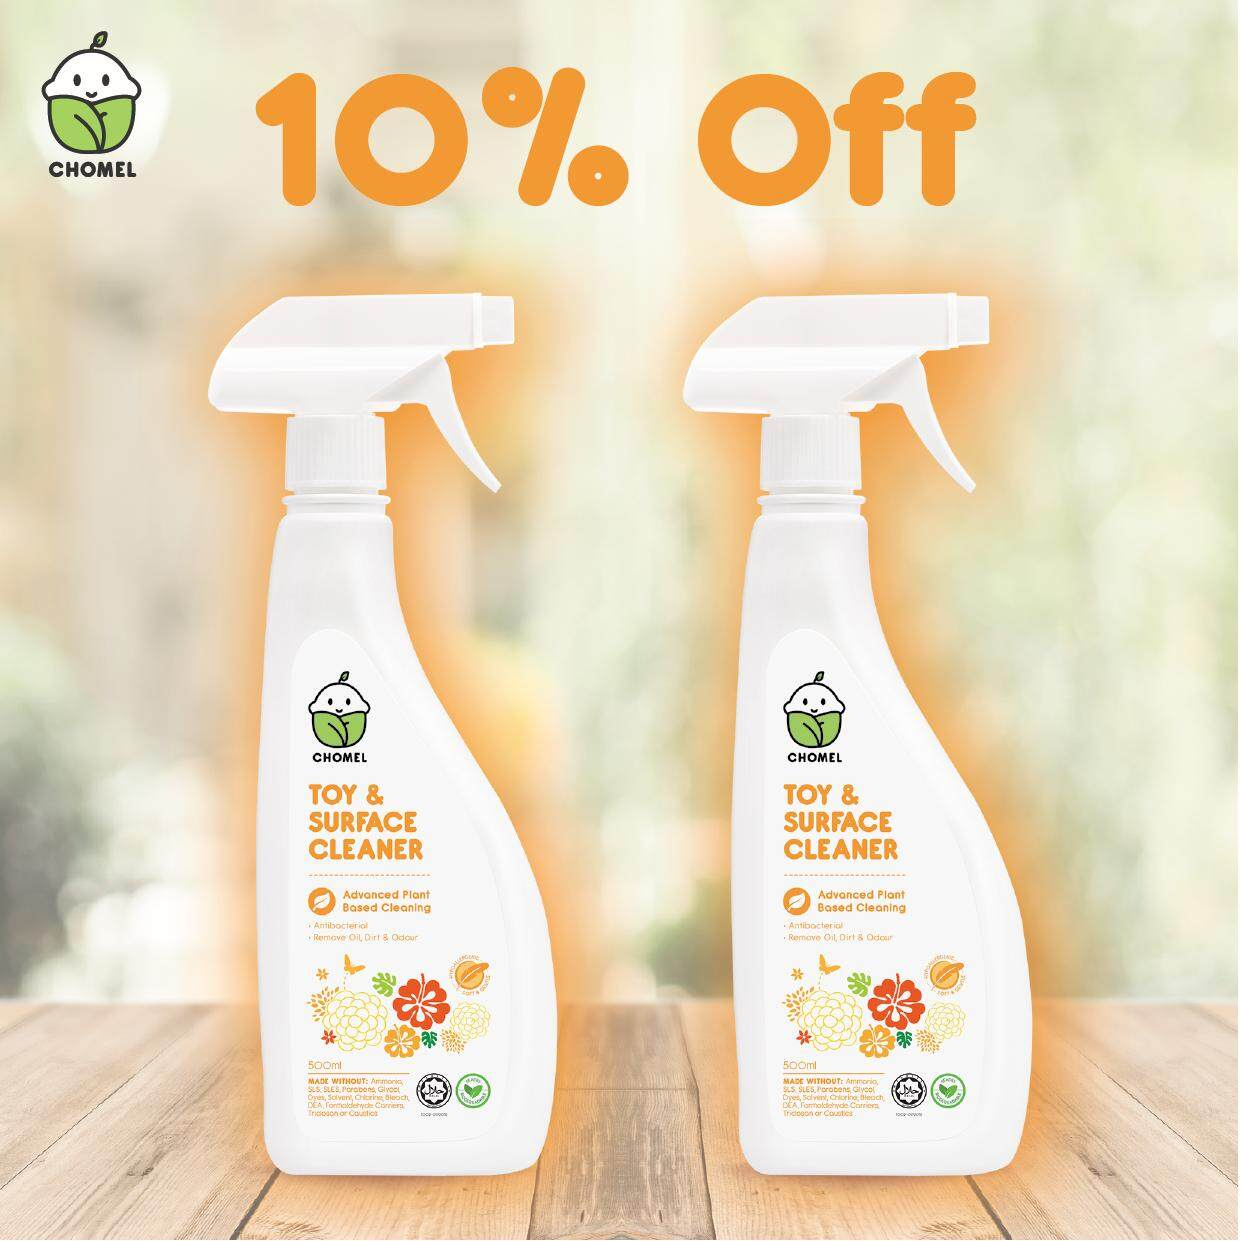 Twinpack CHOMEL Toy & Surface Cleaner Spray 500ml